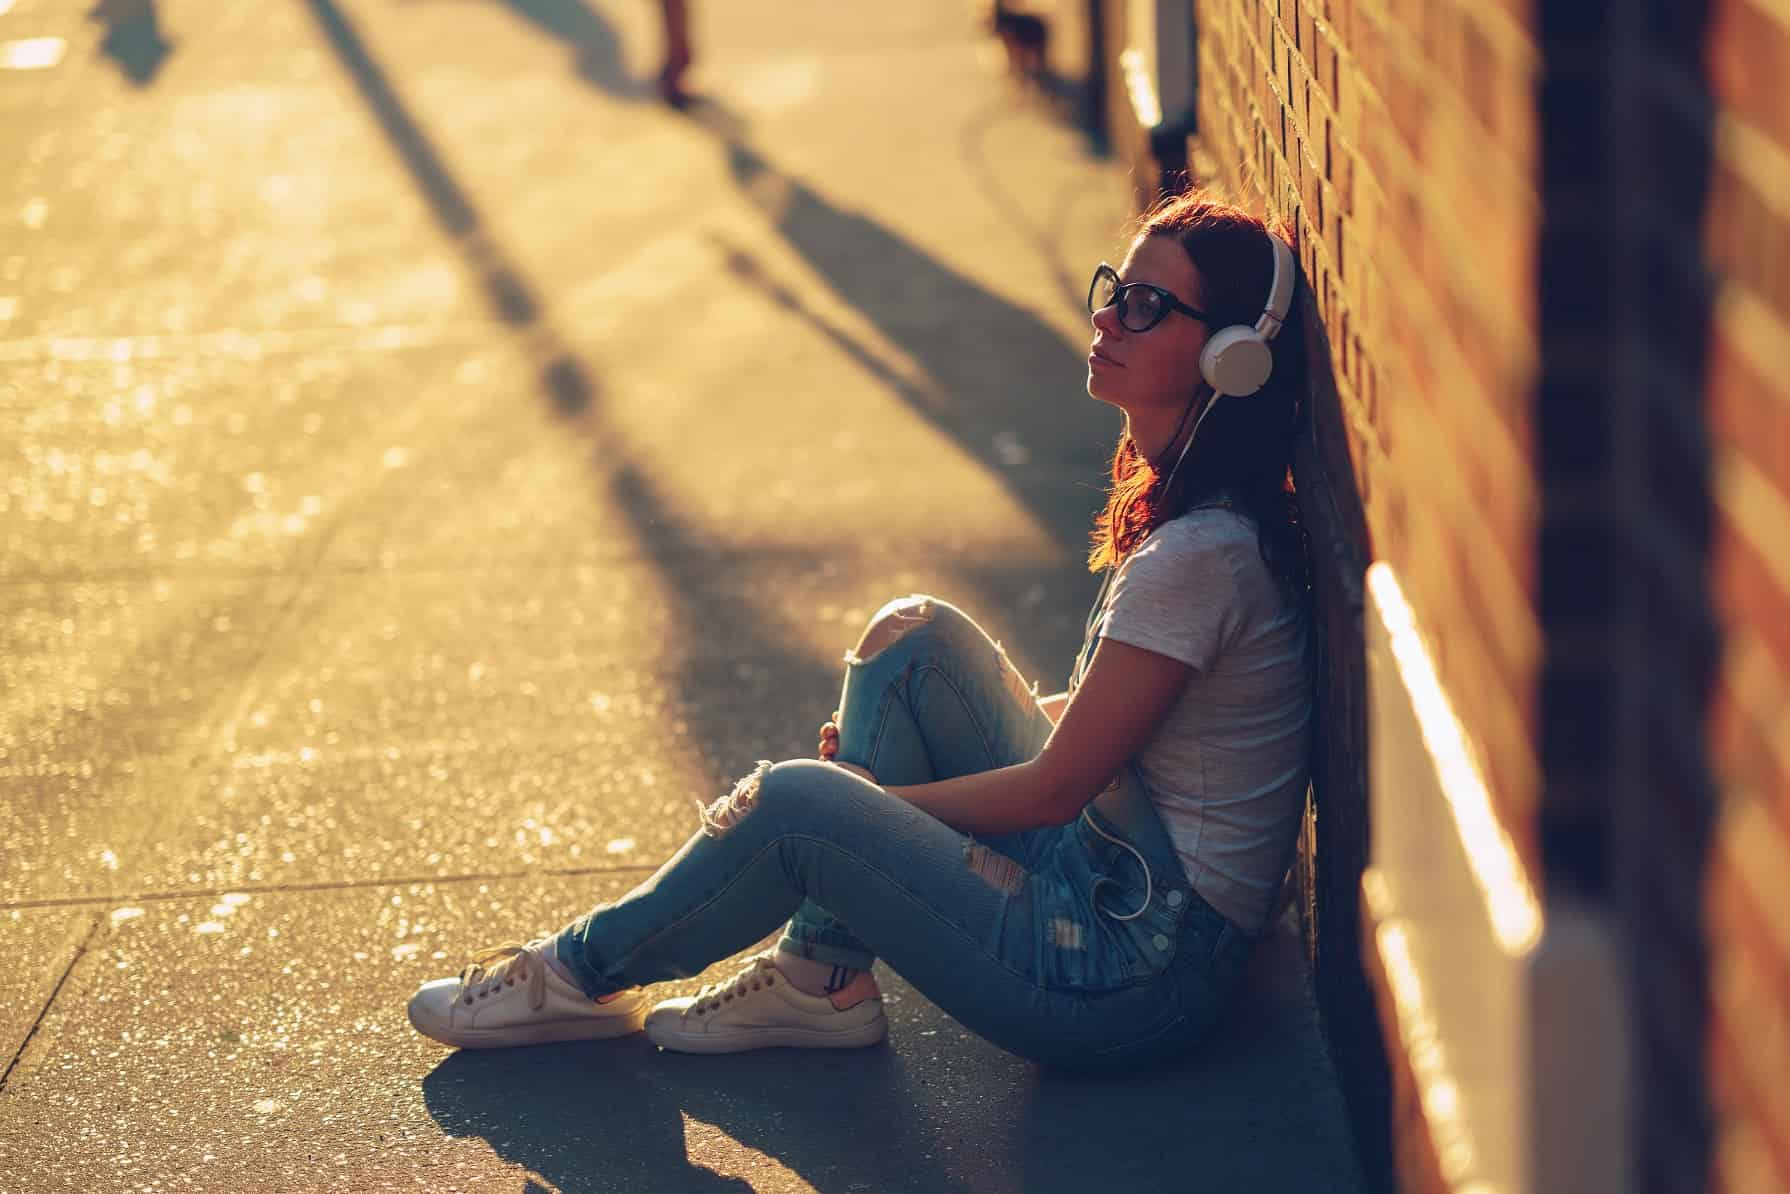 What Is Misophonia And What Can You Do for Patients?